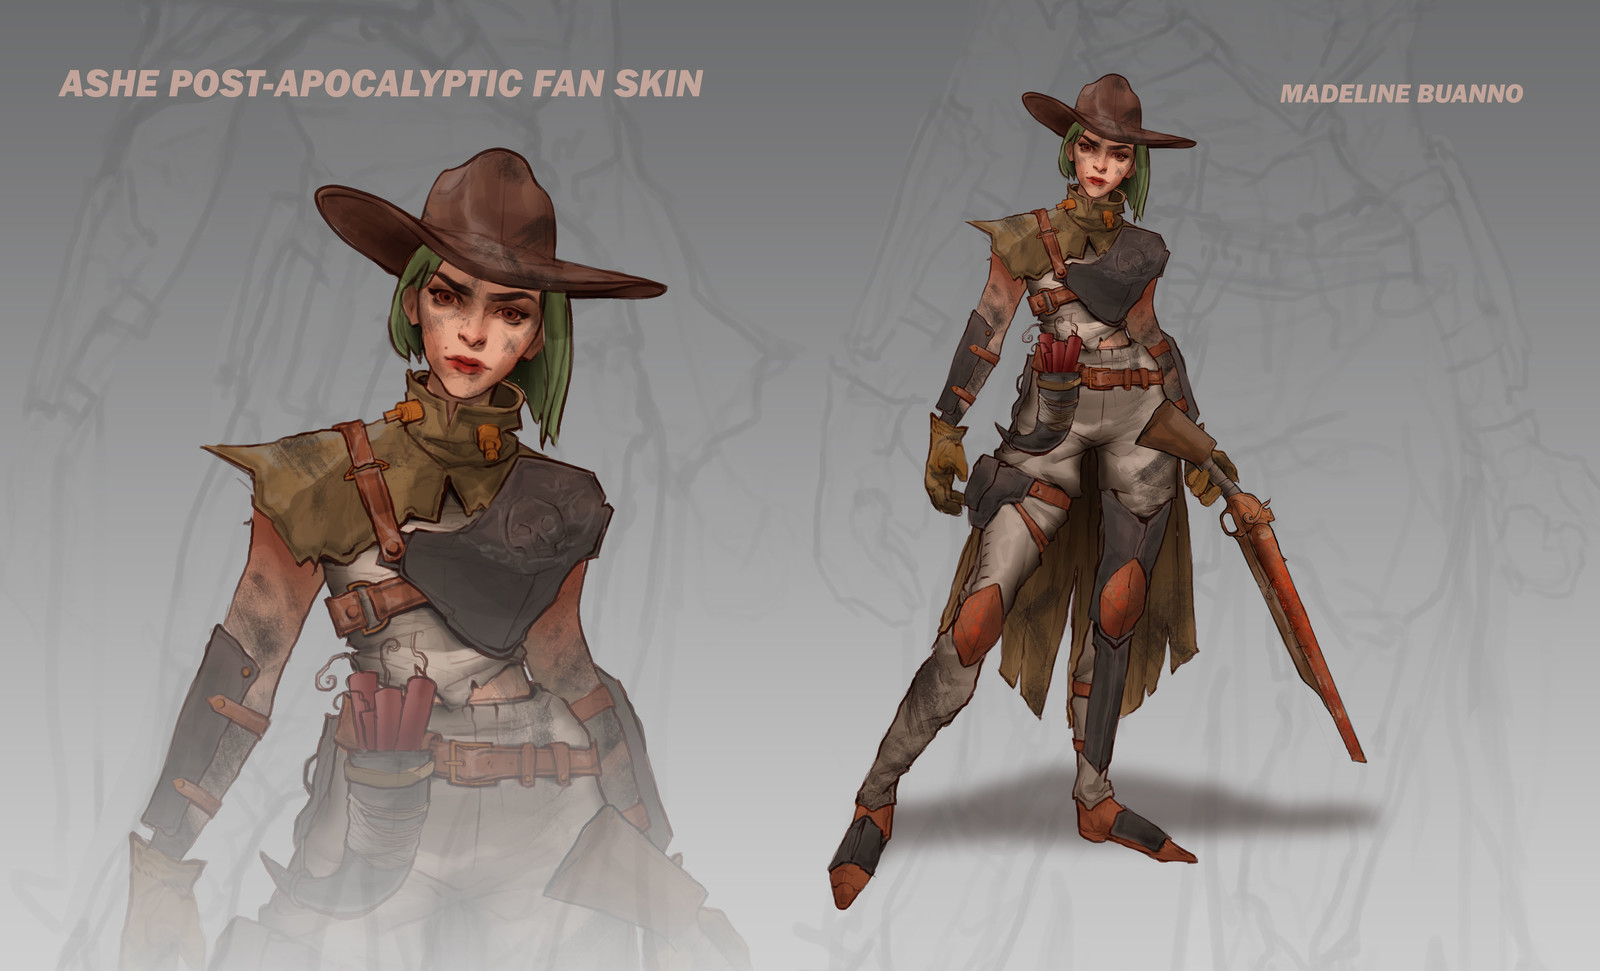 Ashe Post-Apocalyptic Fan Skin